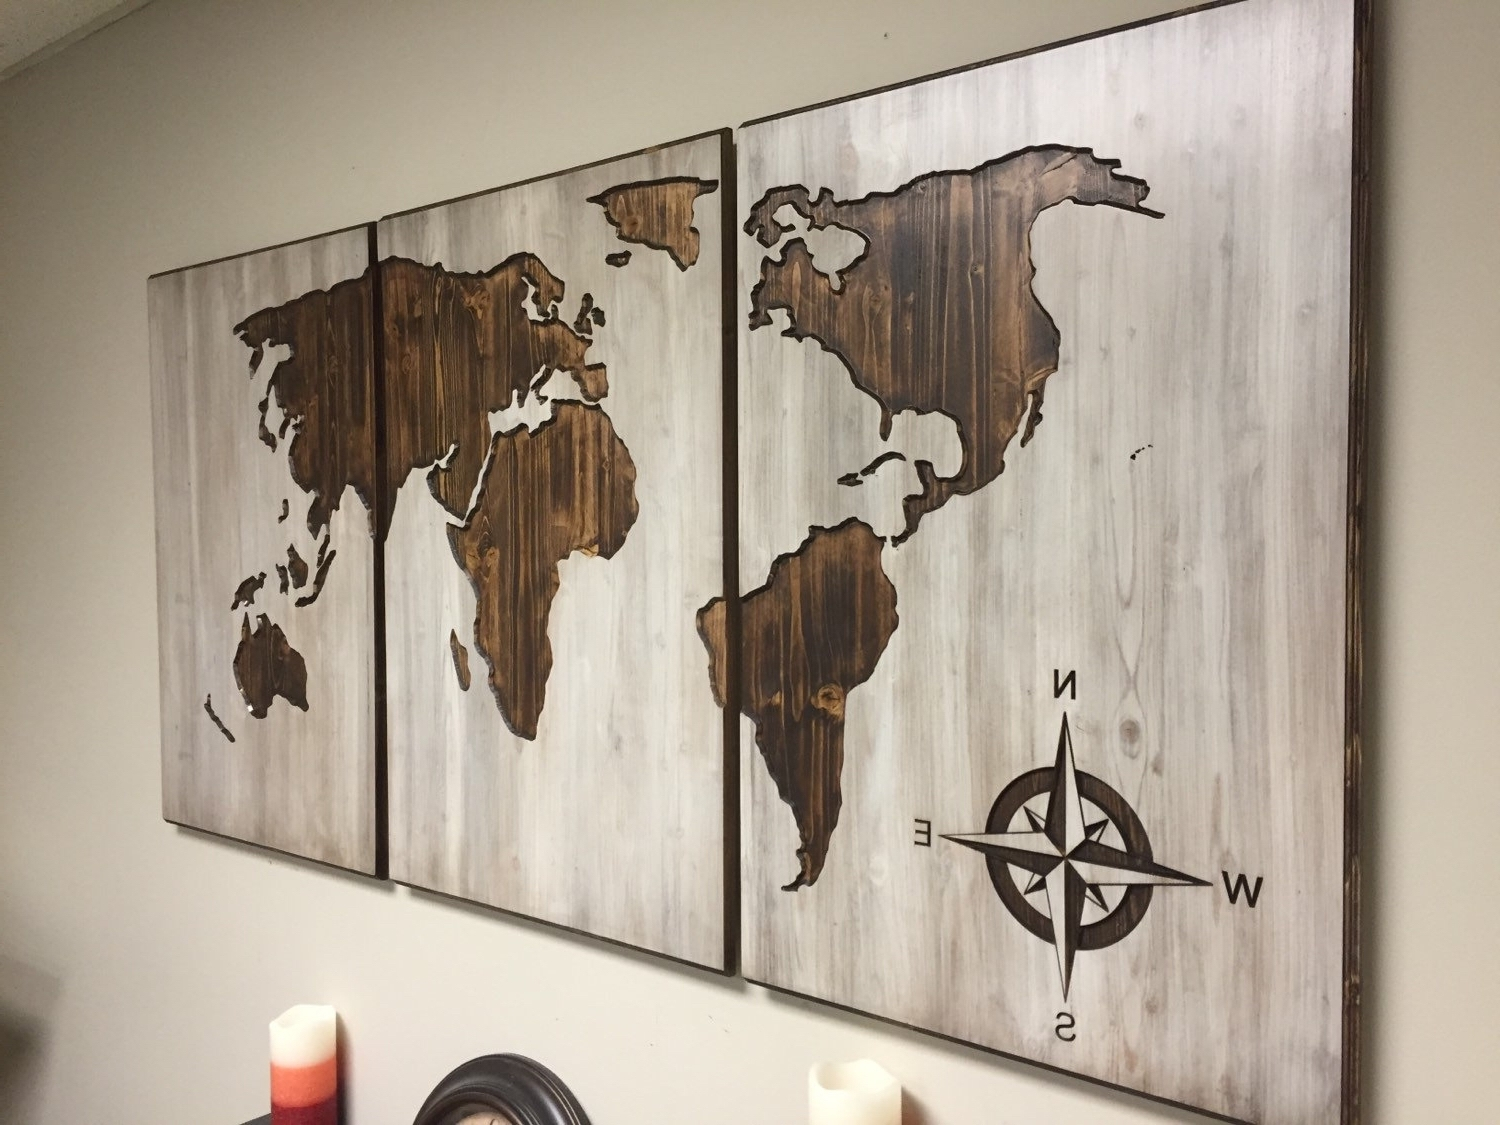 Diy World Map Wall Art Throughout Most Recent Diy World Map Wall Decor – Arabcooking (Gallery 14 of 20)